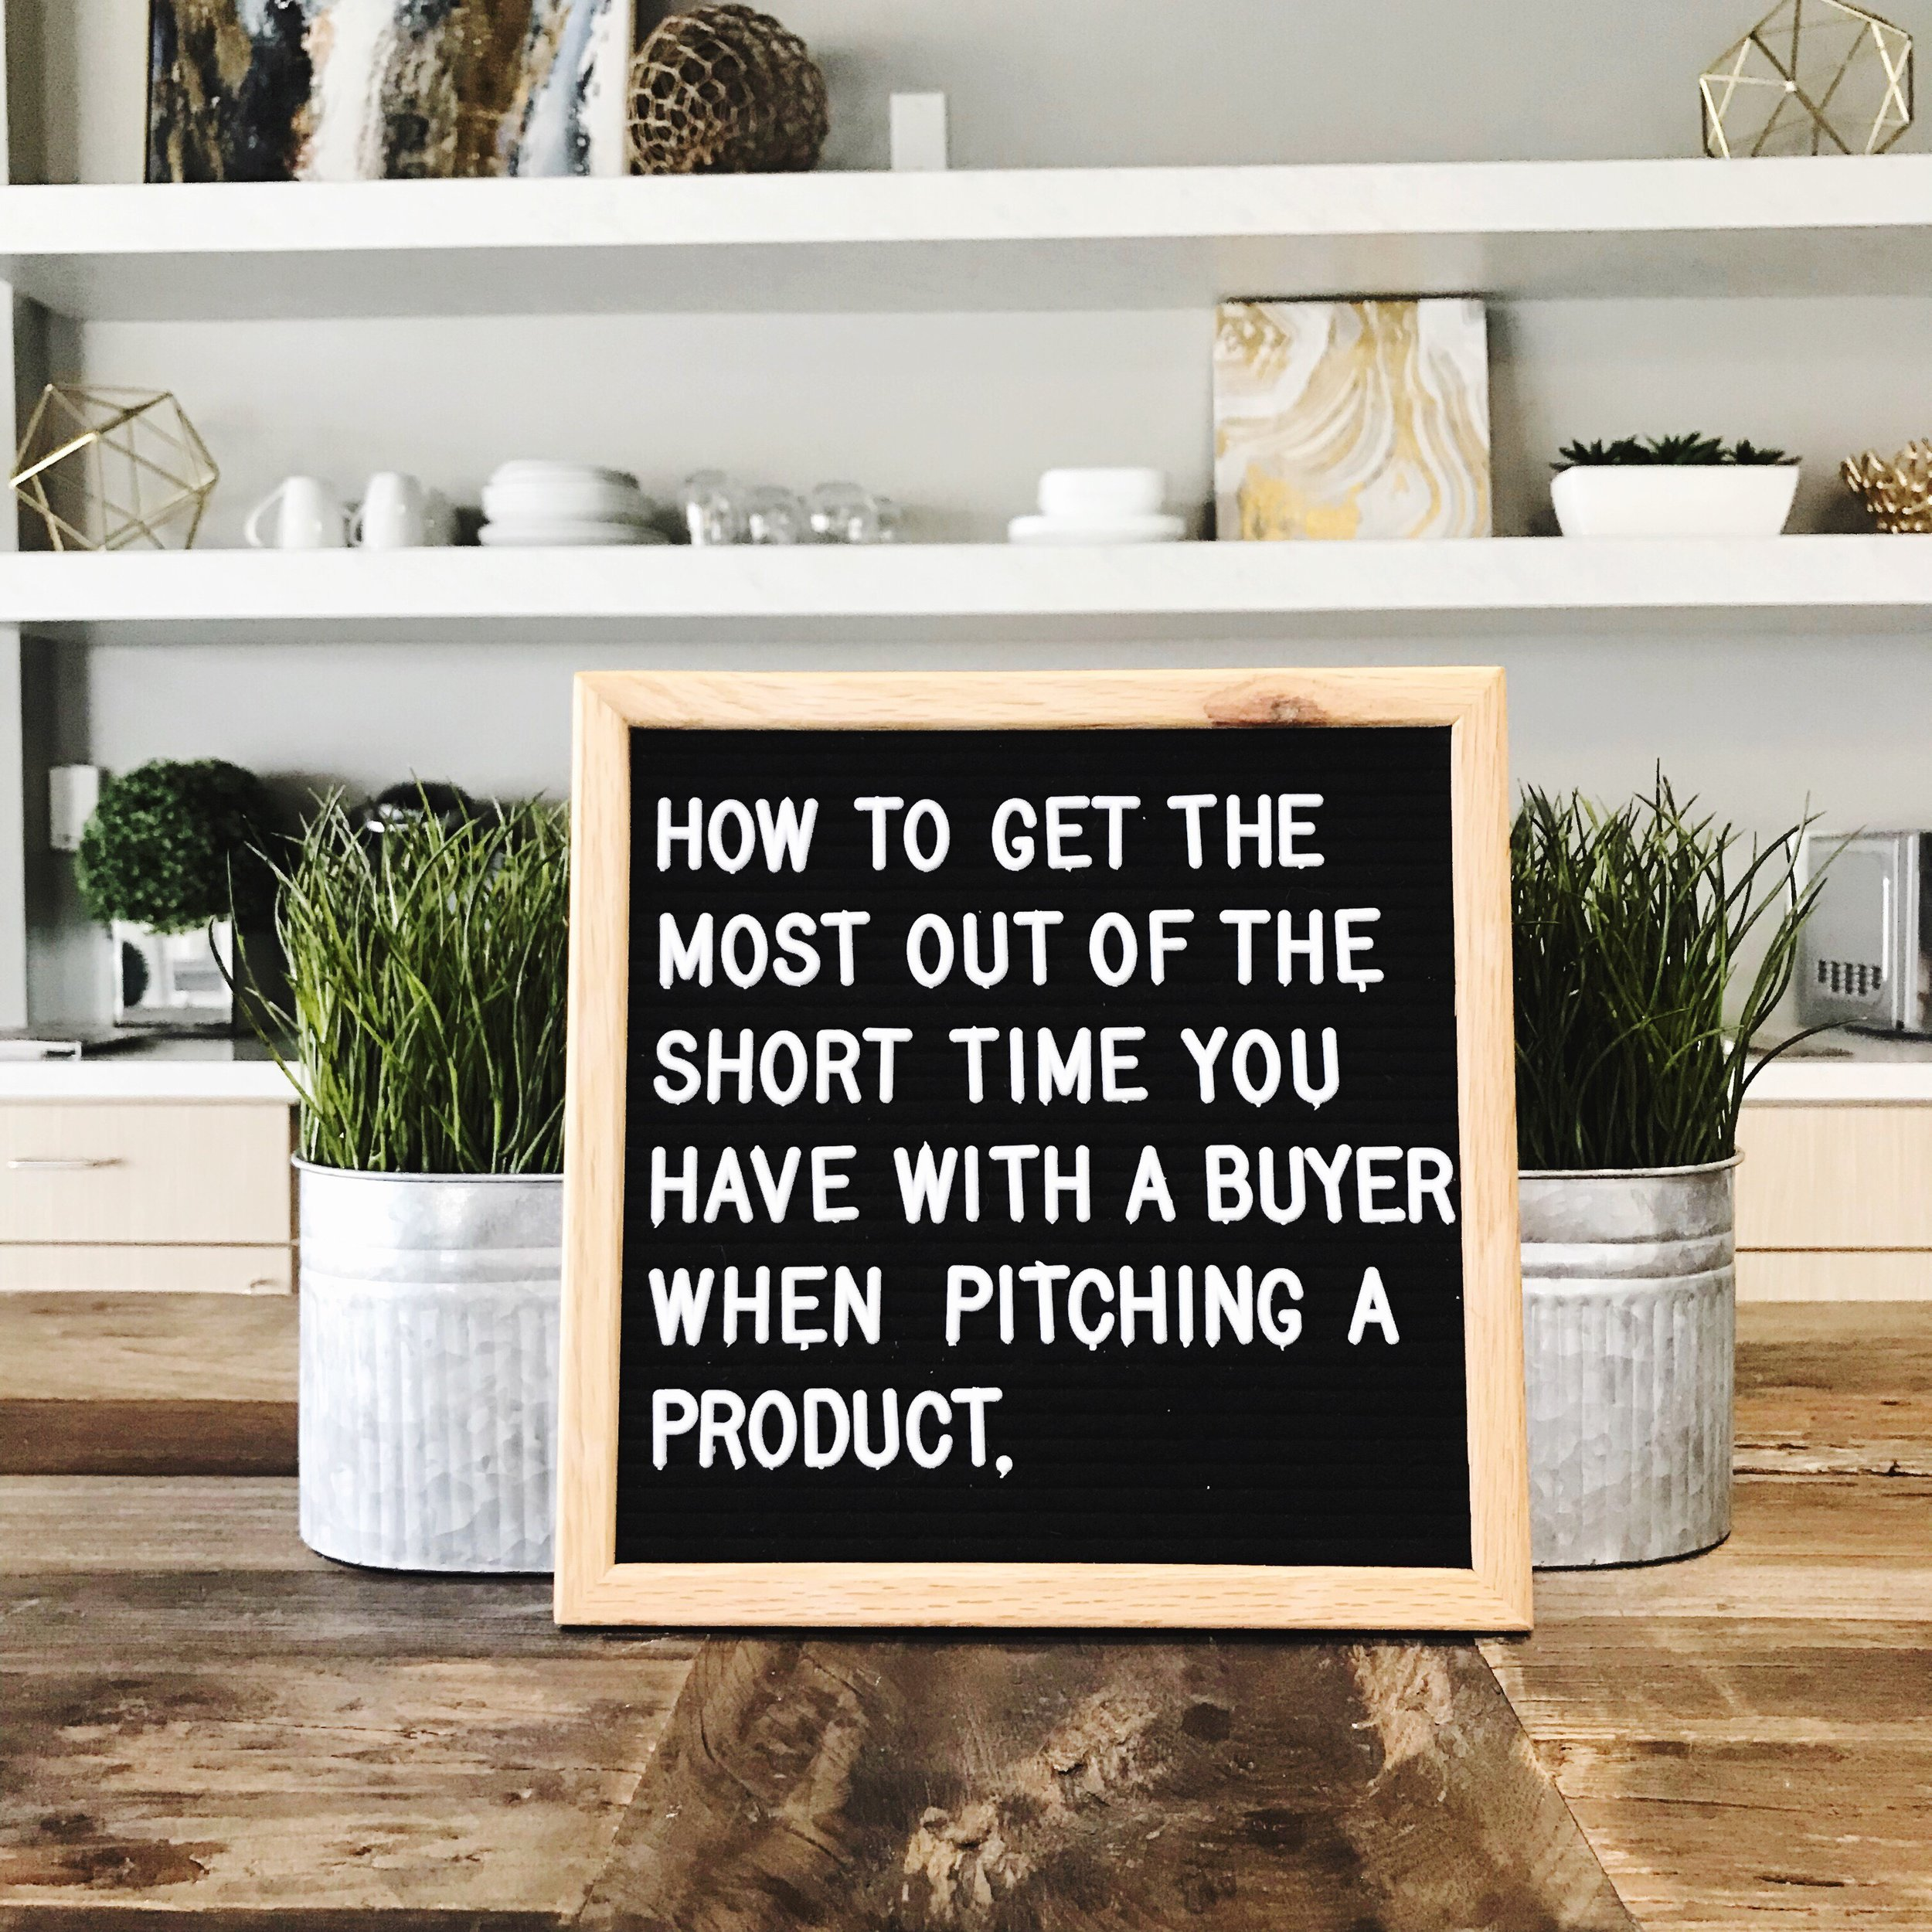 Tip Tuesday - How to get the most out of the short time you have with a buyer when pitching a product - Lentz & Company